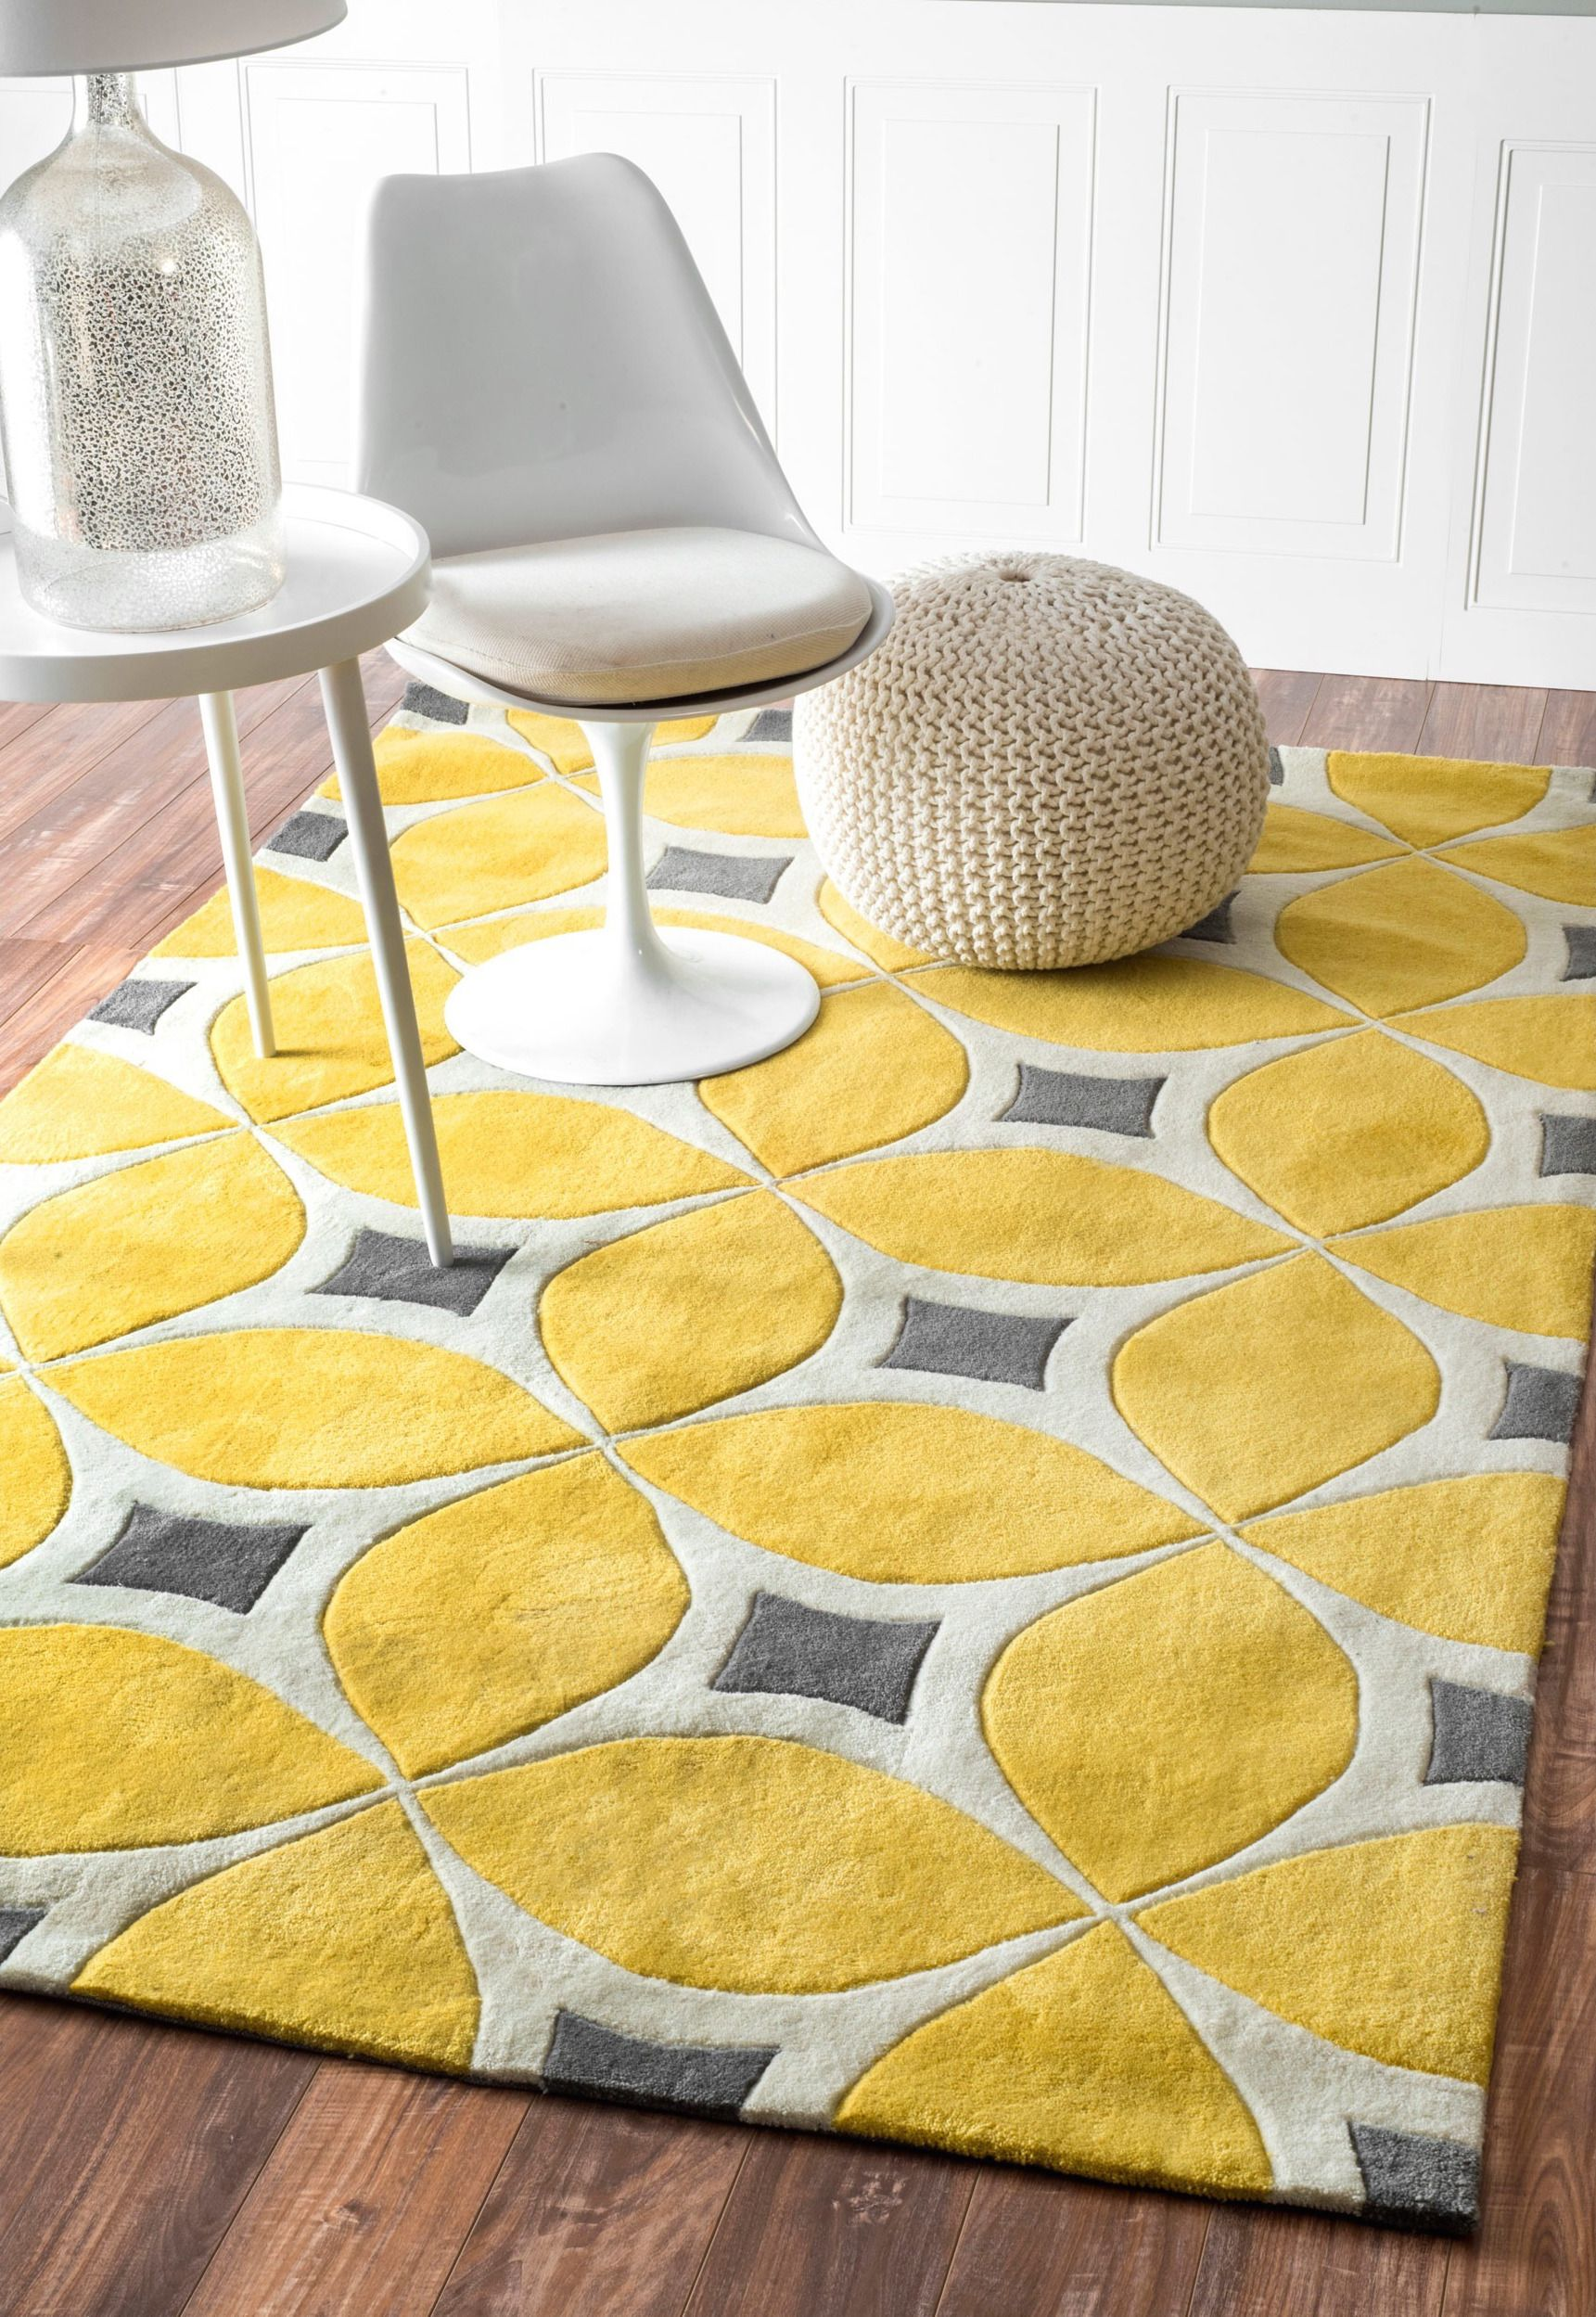 25 Yellow Rug And Carpet Ideas To Brighten Up Any Room Yellow Area Rugs Rugs In Living Room Yellow Rug